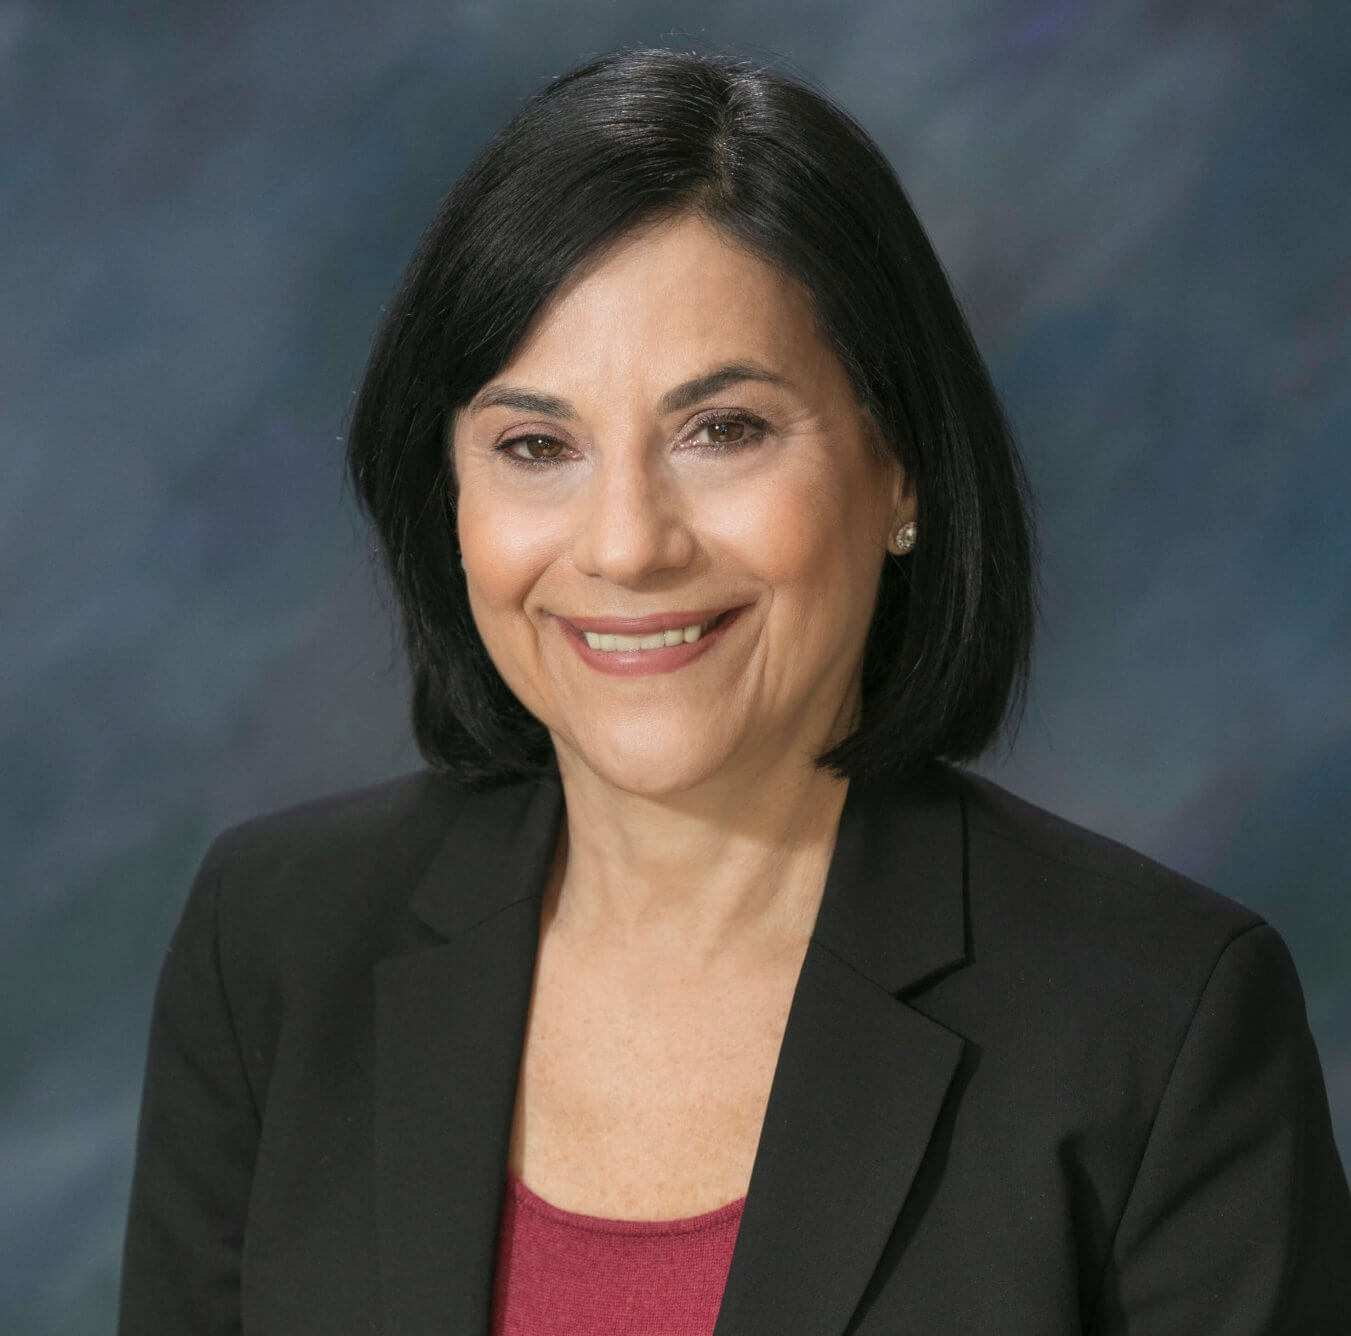 Rhonda L. Epstein, Esq. Hearing Officer for NAM (National Arbitration and Mediation)